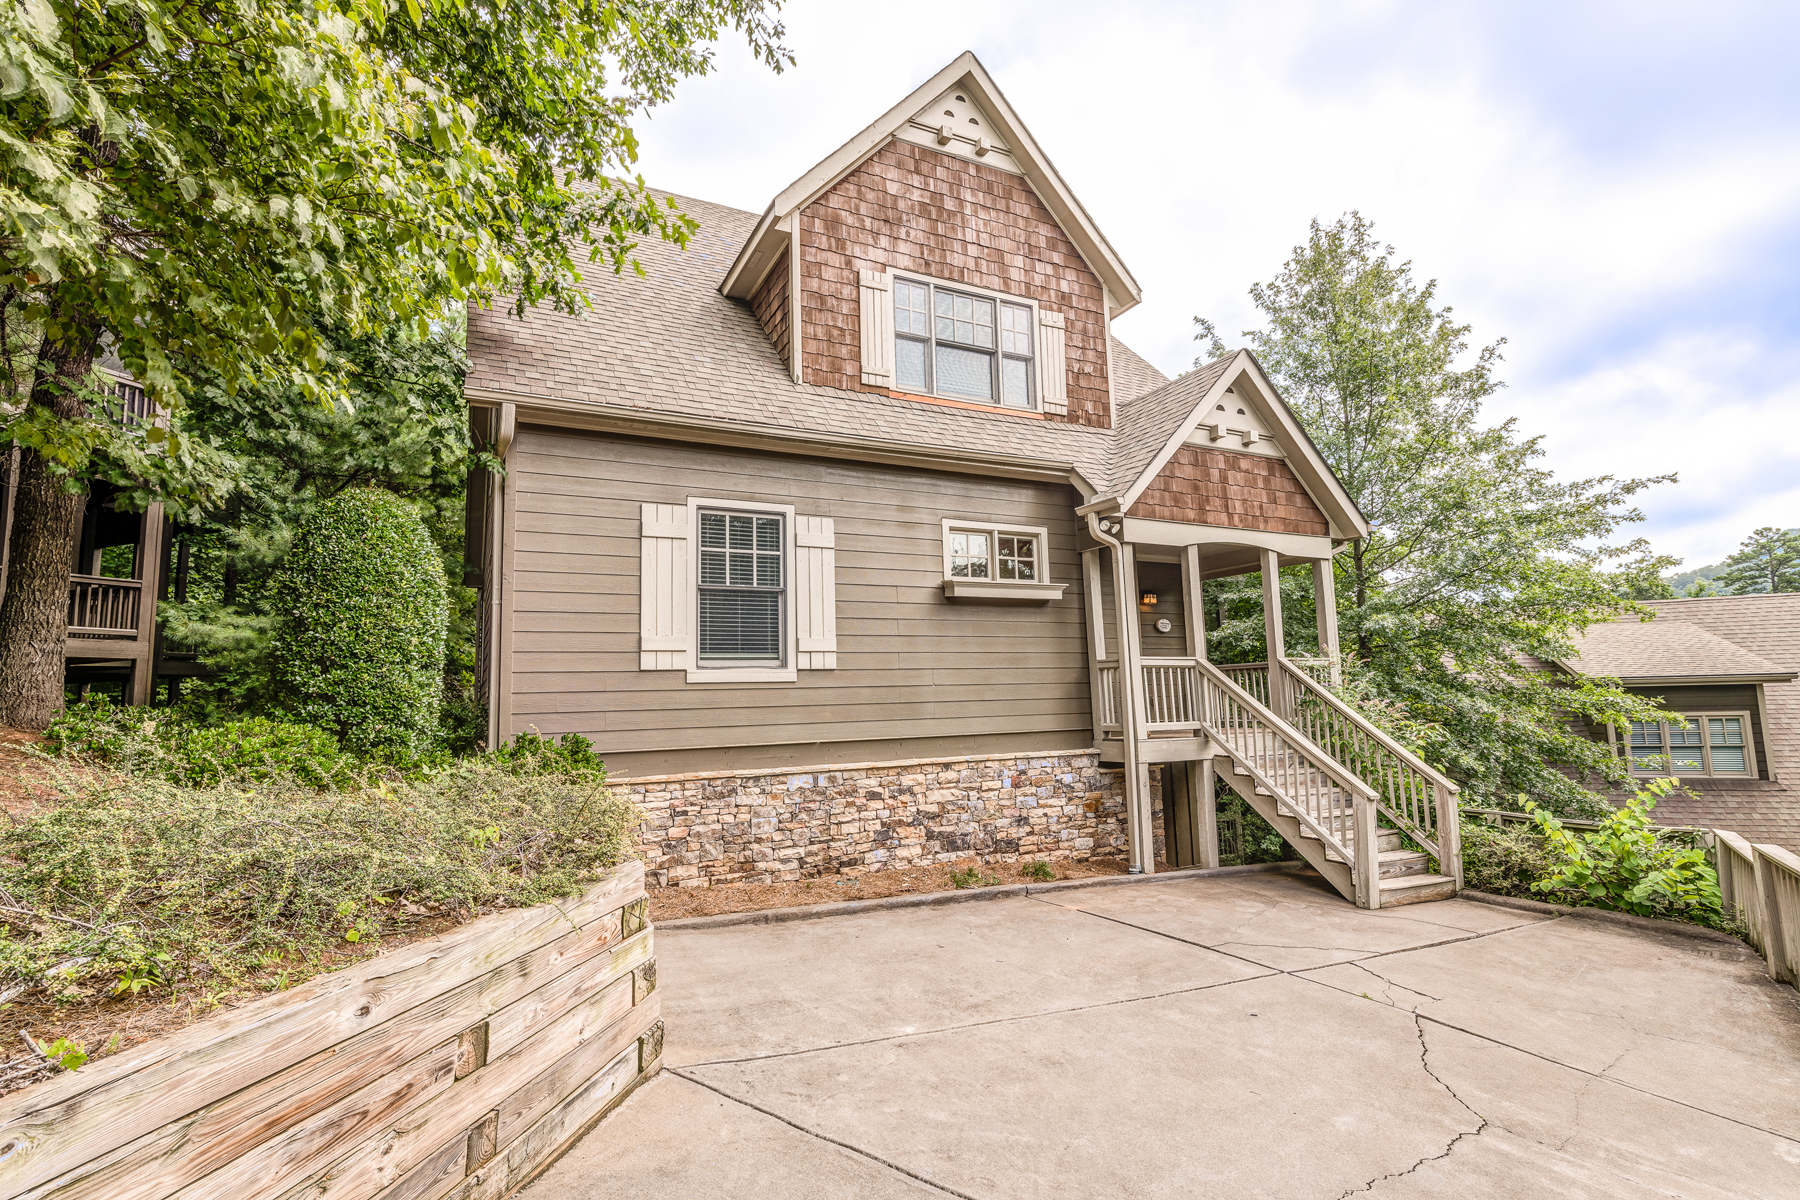 Single Family Home for Sale at Big Canoe Is A Mountain Community For A Perfect Getaway 9 Laurel Ridge Way Big Canoe, Georgia 30143 United States